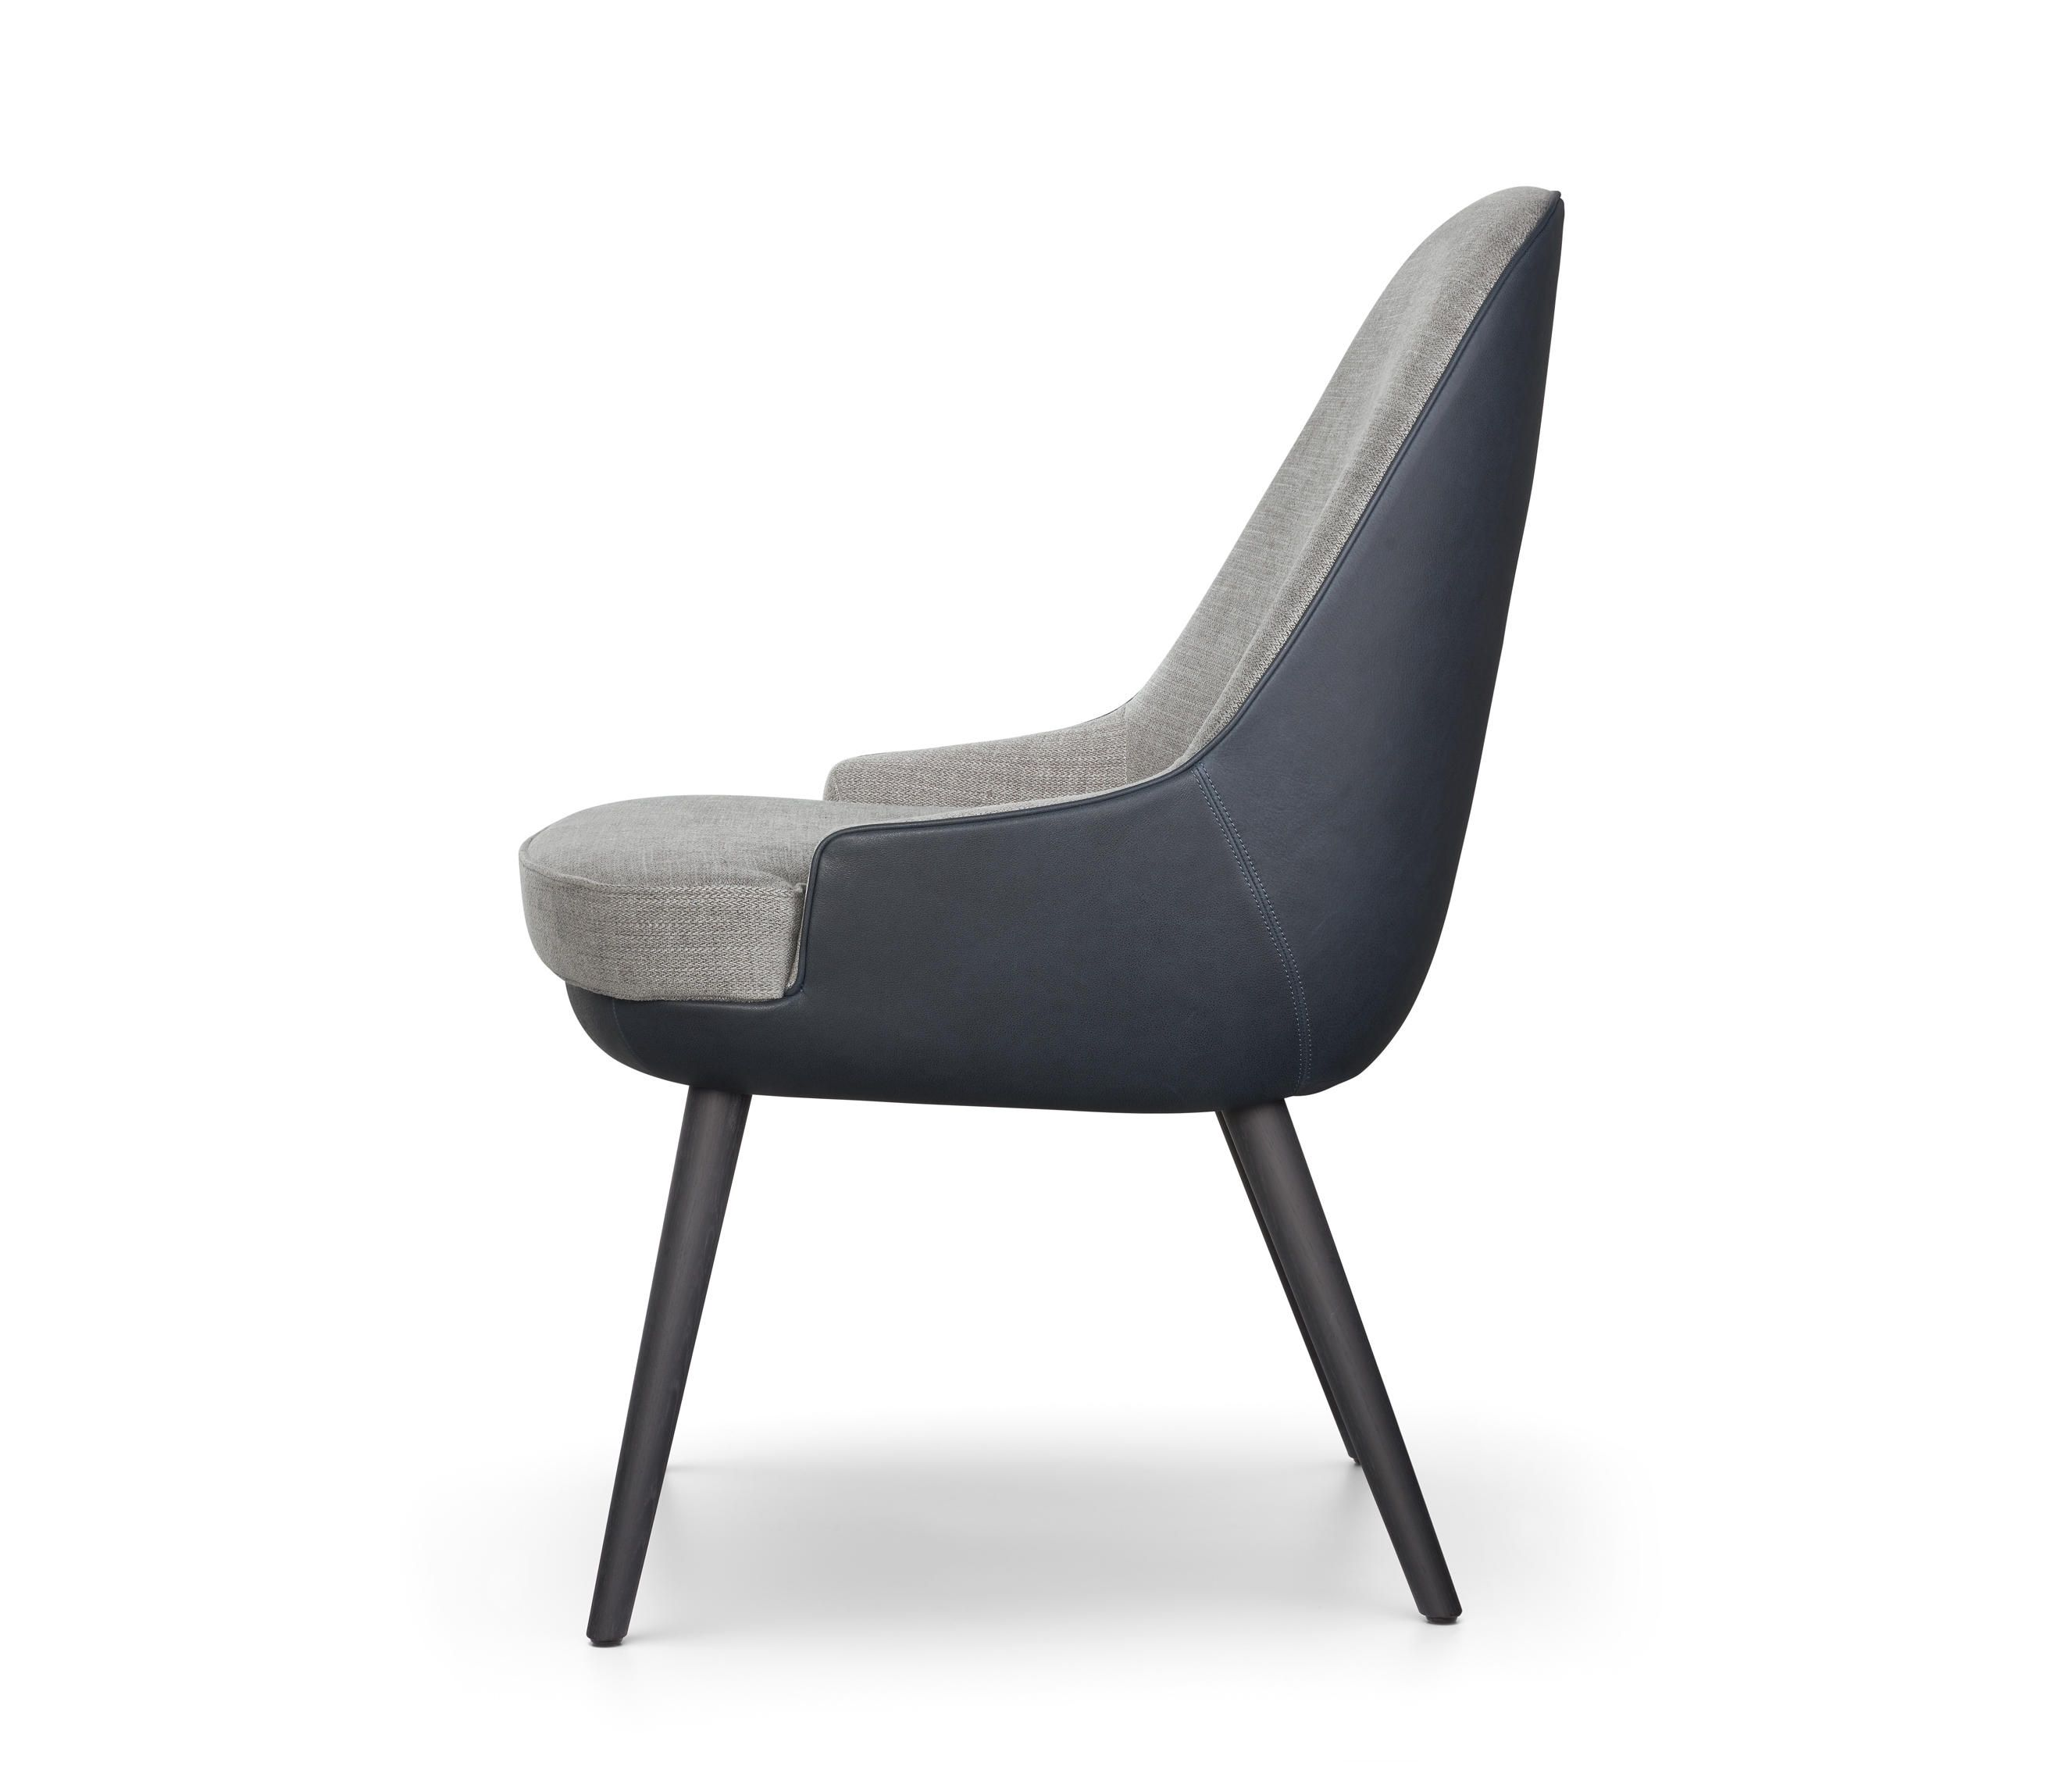 Walter Knoll Bureaustoel.375 Side Chair Lounge Chairs From Walter Knoll Architonic